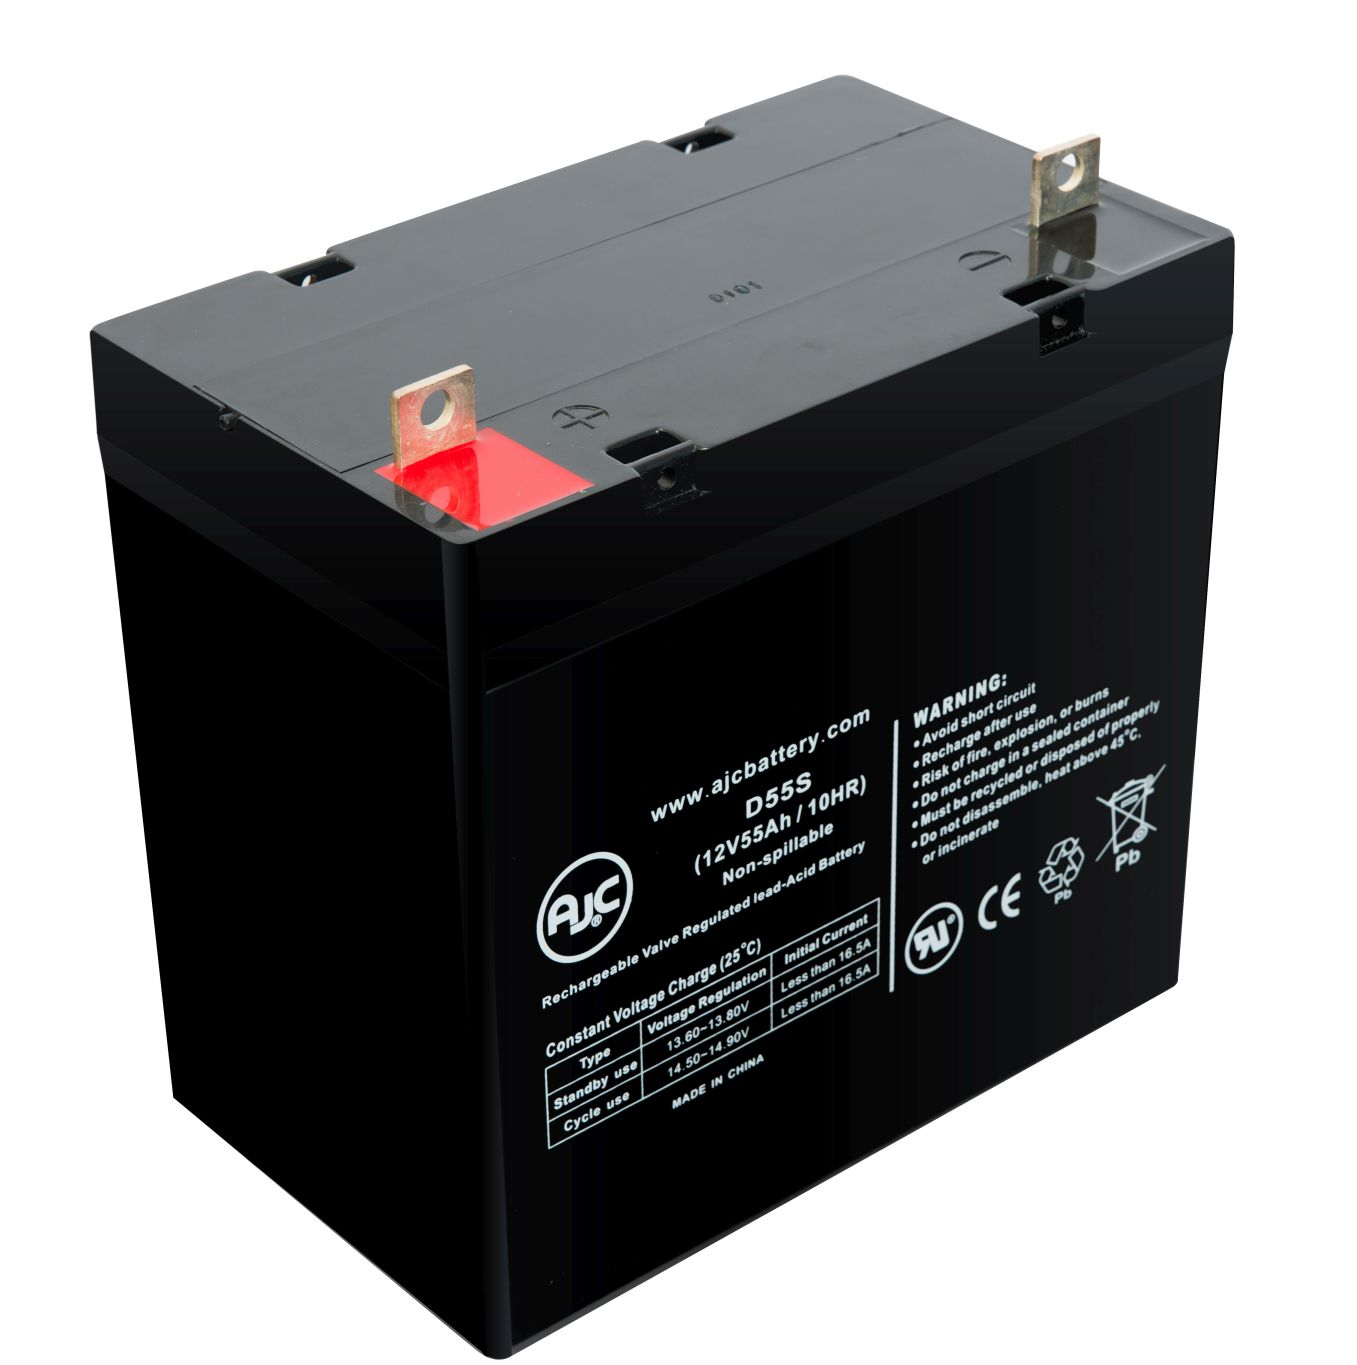 Bladez President 12V 55Ah Scooter Battery - This is an AJC Brand® Replacement